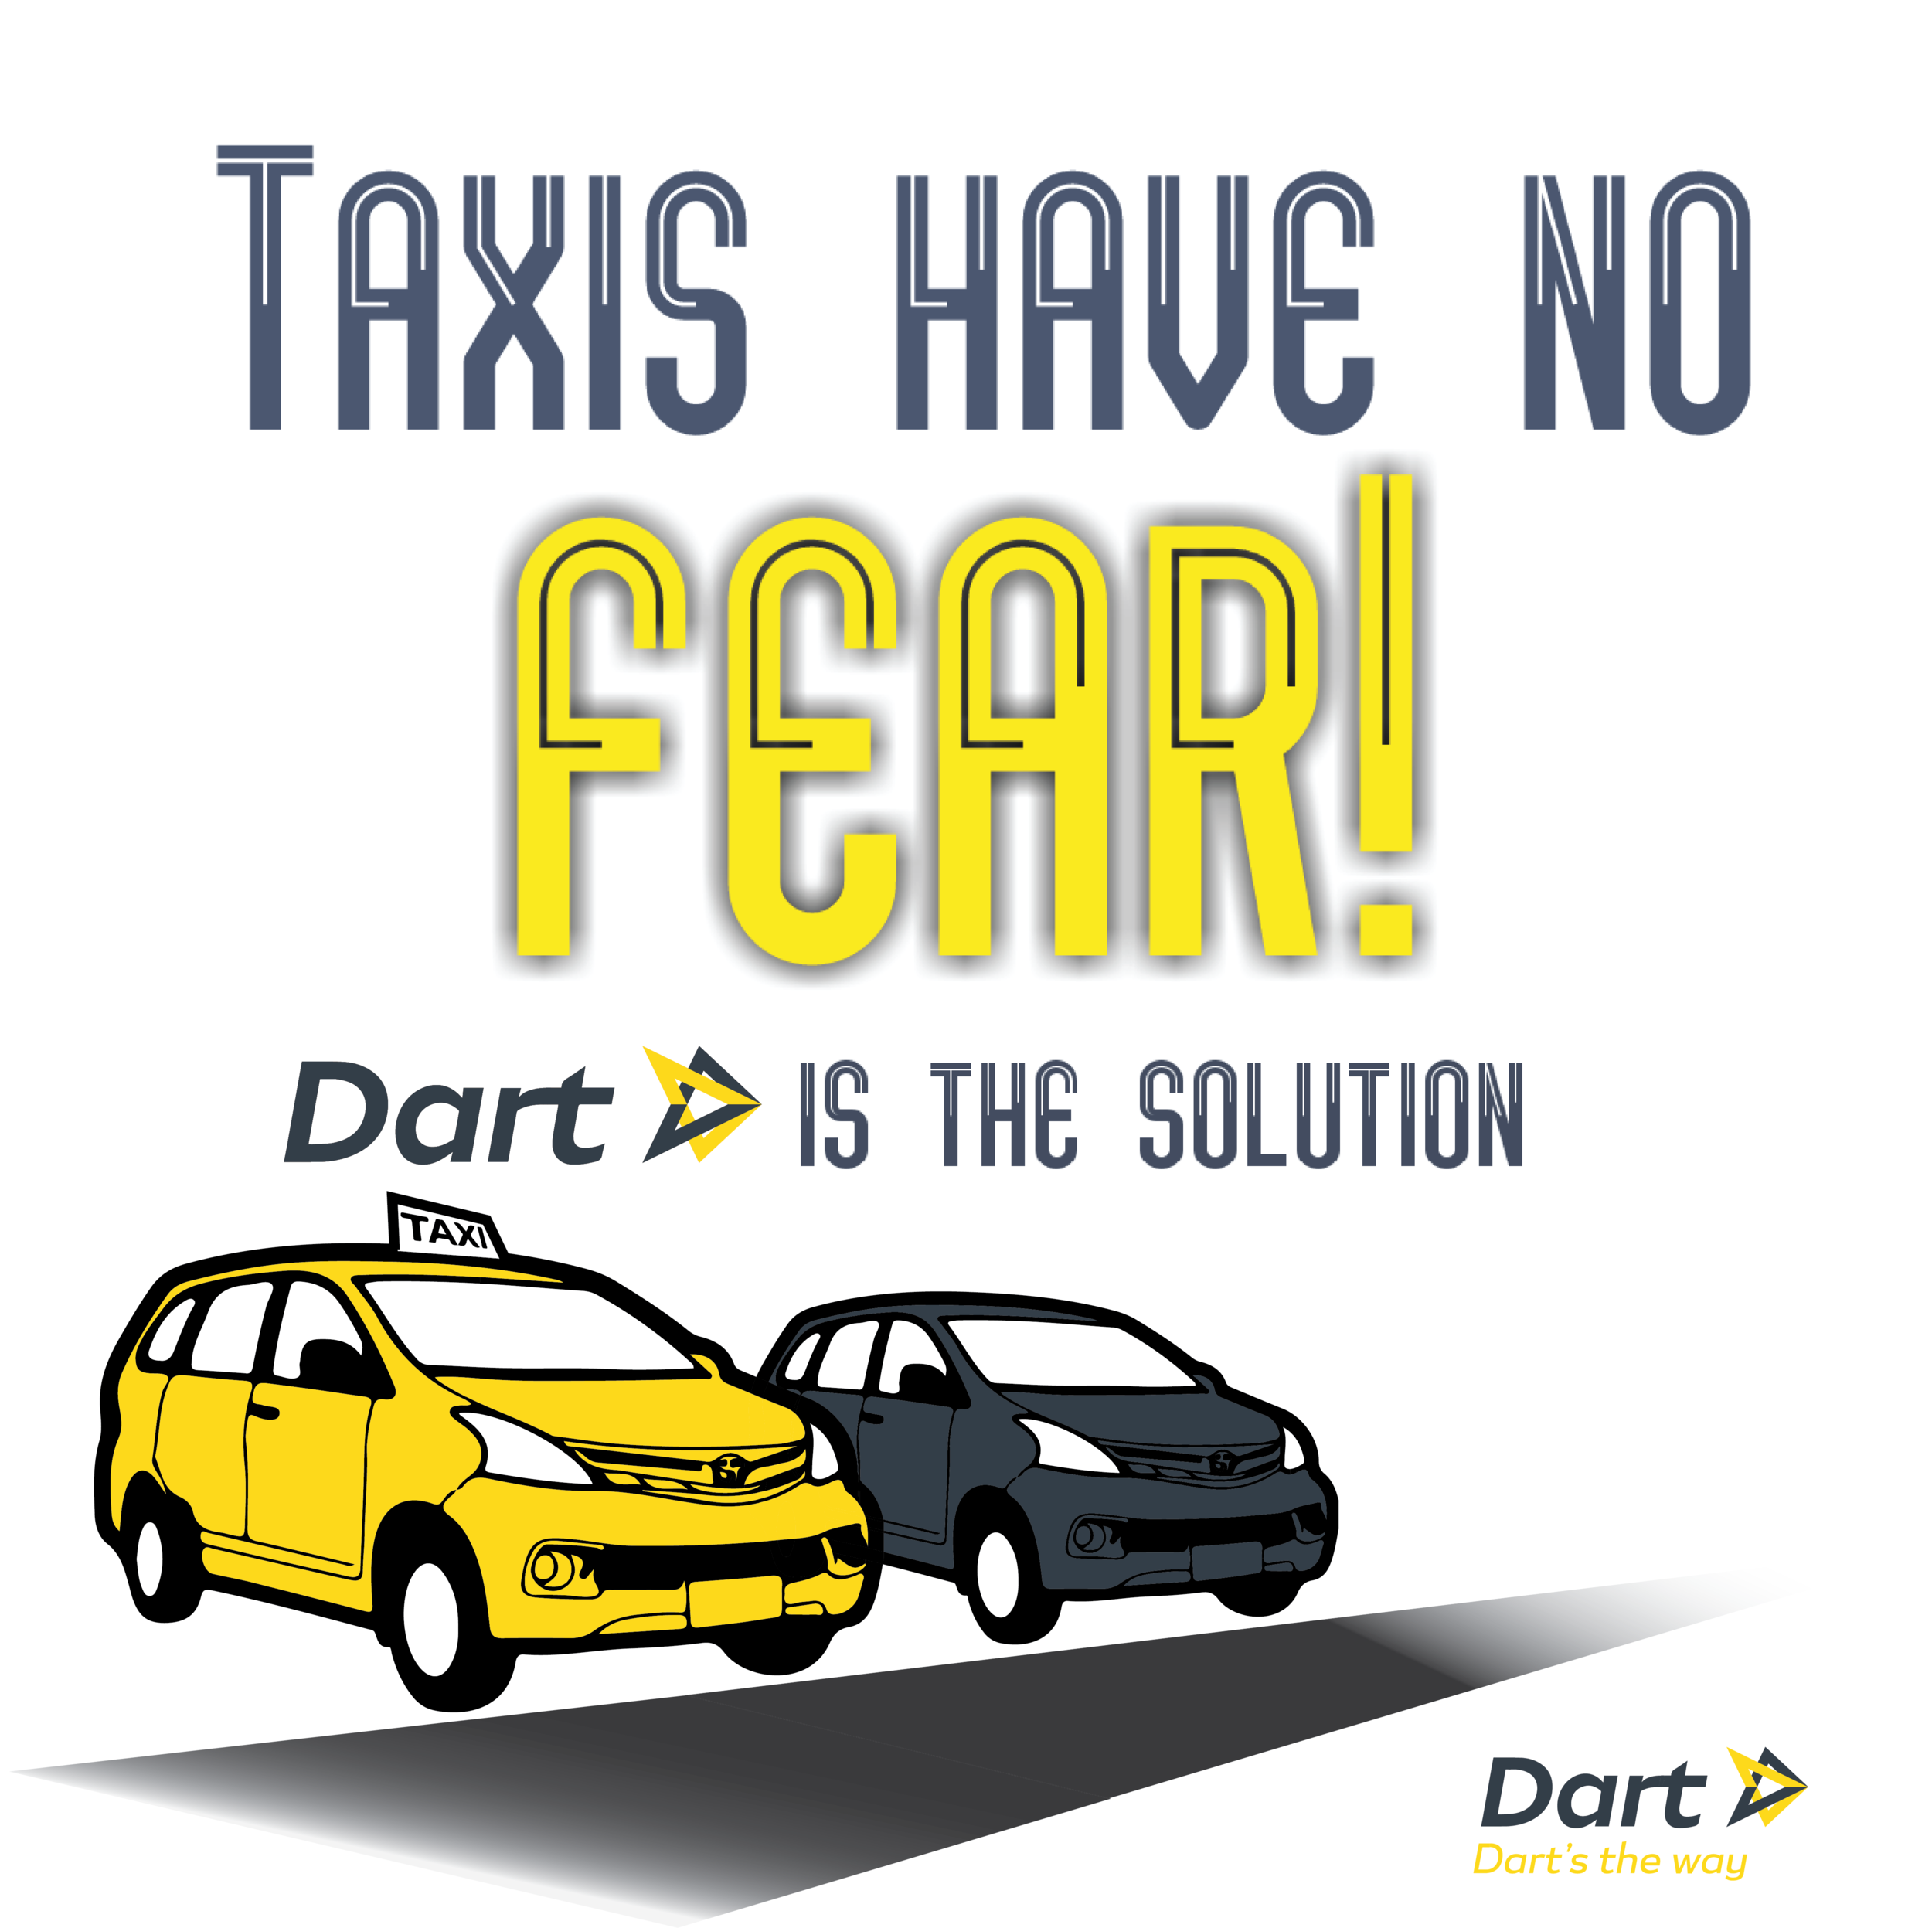 Dart — Brunei taxis have no fear! Dart is the solution